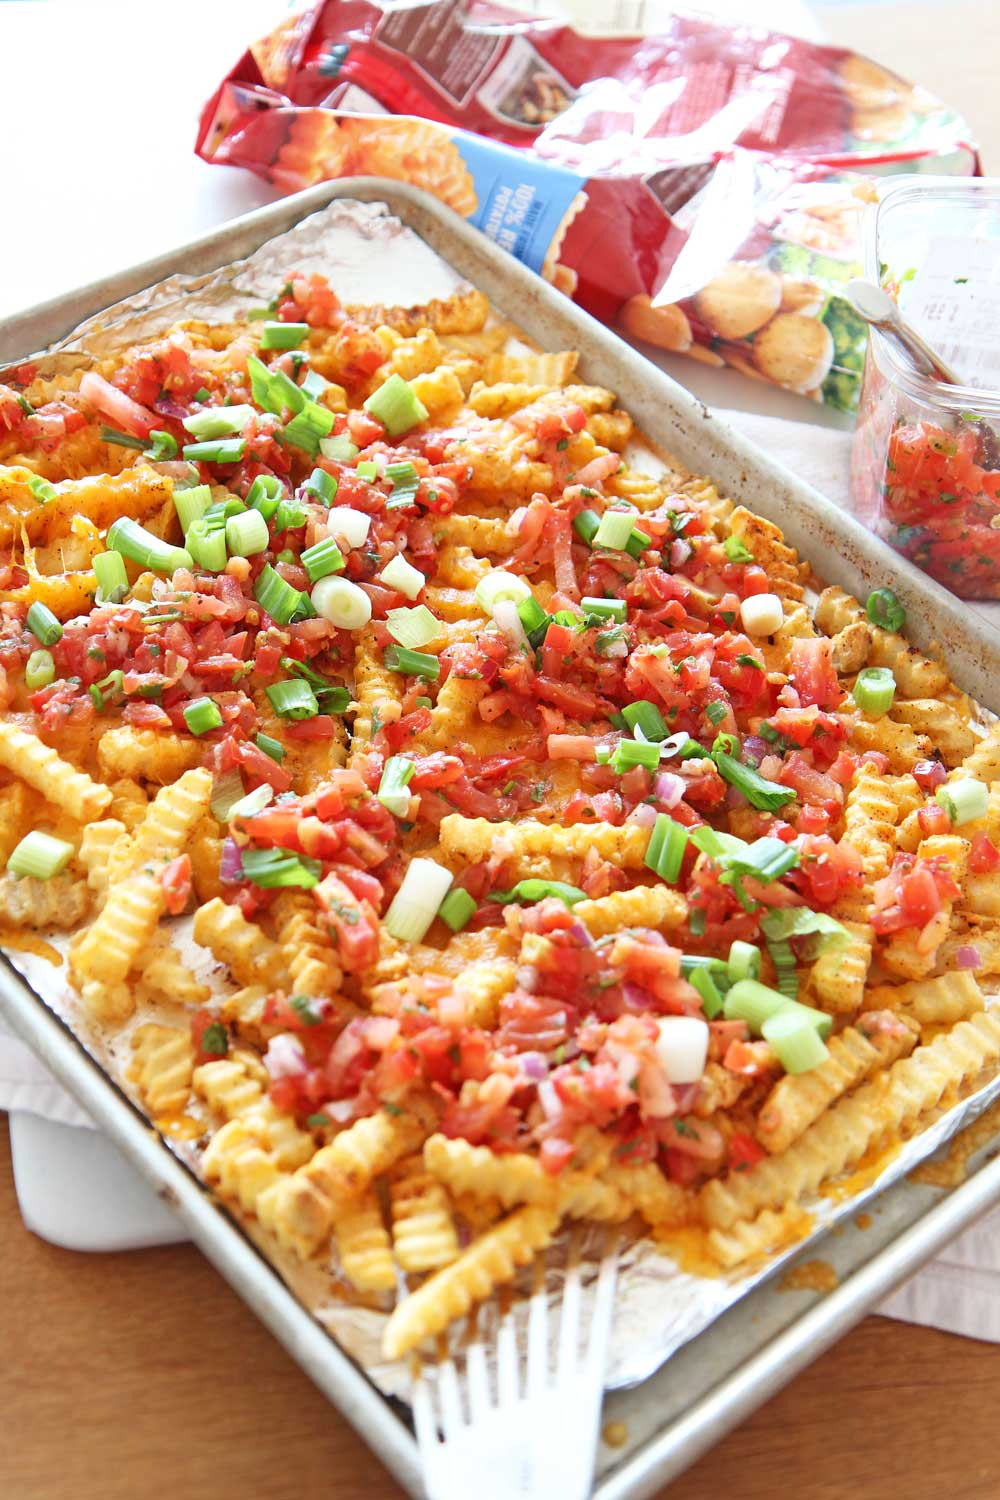 How to Transform Frozen Fries Into Loaded Taco Fries Recipe. Frozen fries, salsa, scallions, cheese, and chili seasoning. Transforming frozen fries is as easy as pantry seasonings cheese, and an oven. Happy sheet pan cooking! www.ChopHappy.com #frozenfries #tacos #pantry